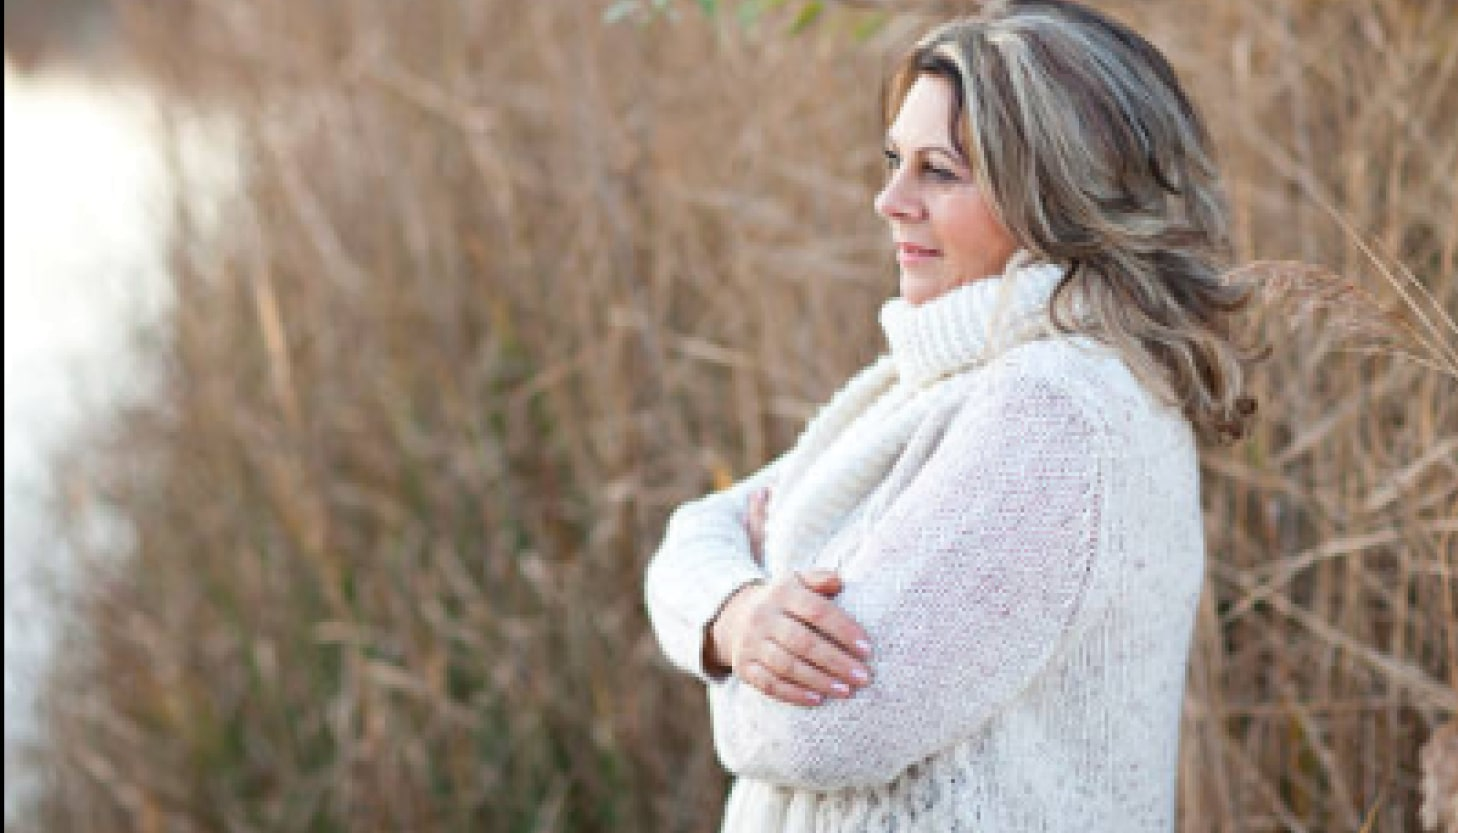 Woman standing by rivers edge with arms folded with a sense of improved life quality after receiving treatment for menopause.